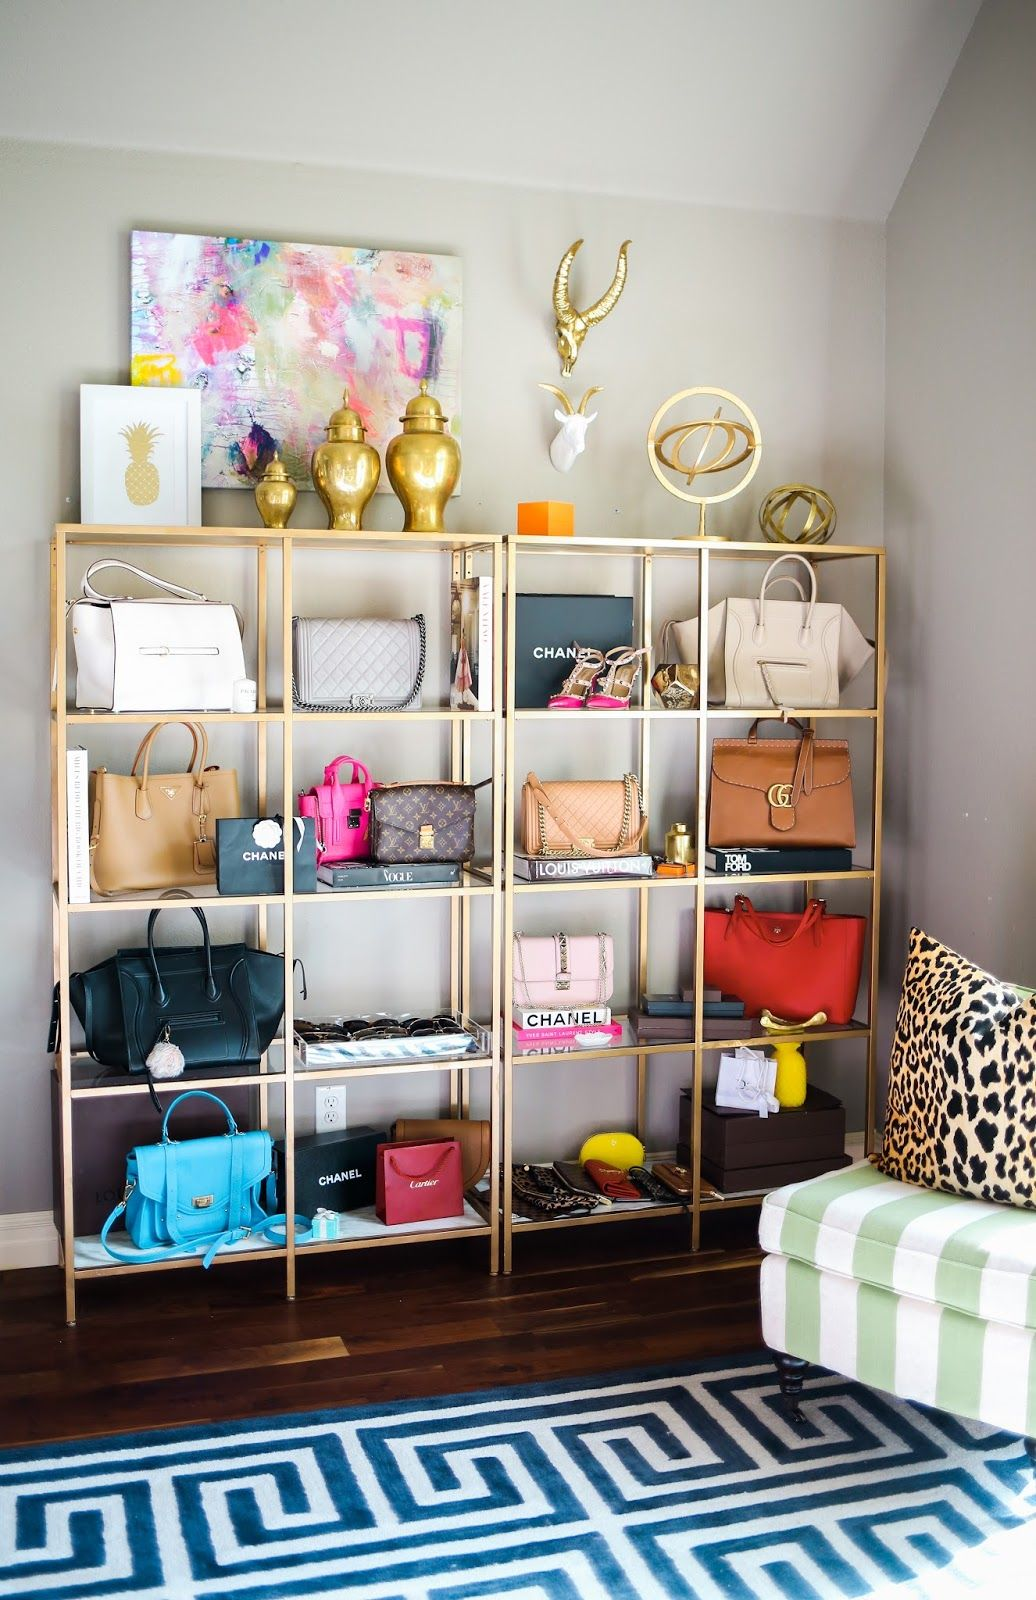 The sweetest thing home office closet for fashion blogger Where to put a bookcase in a room